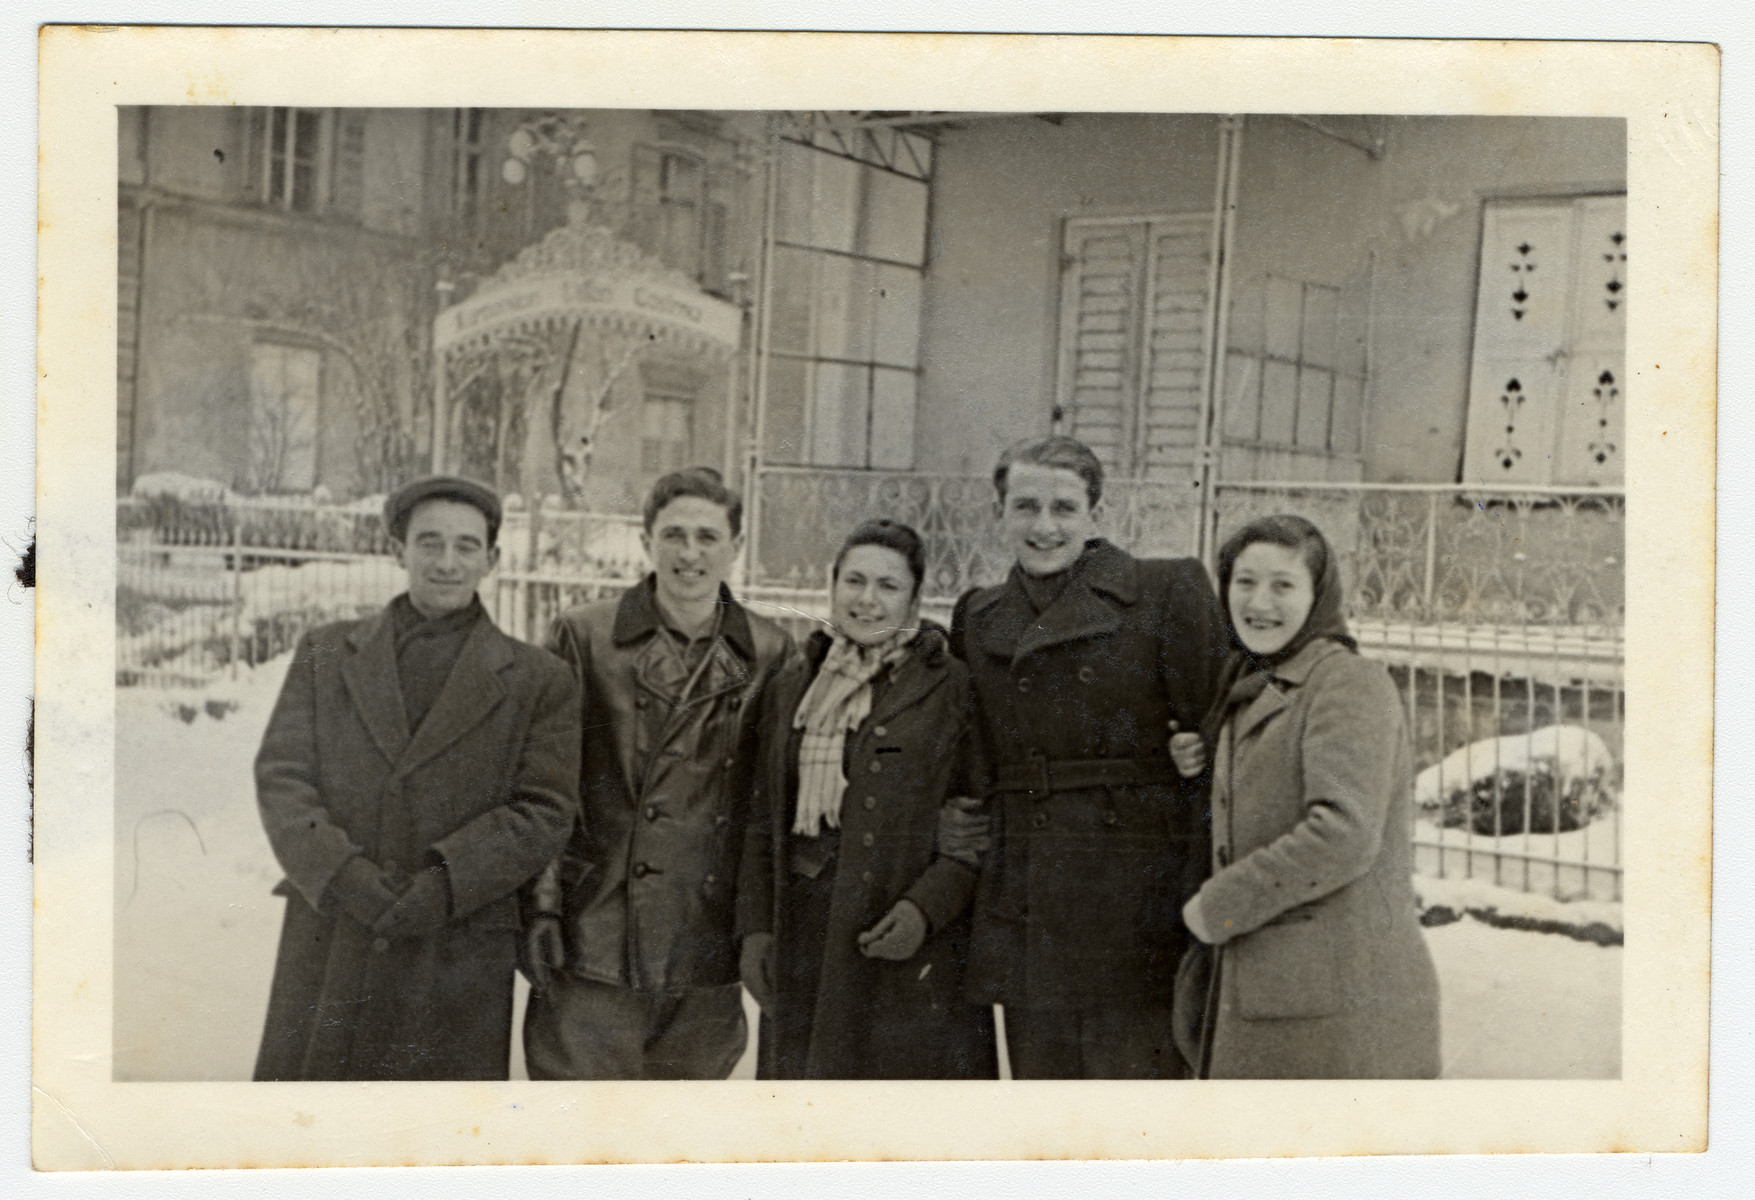 A group of young DPs gather outside in the snow at the Eschwege displaced persons' camp.